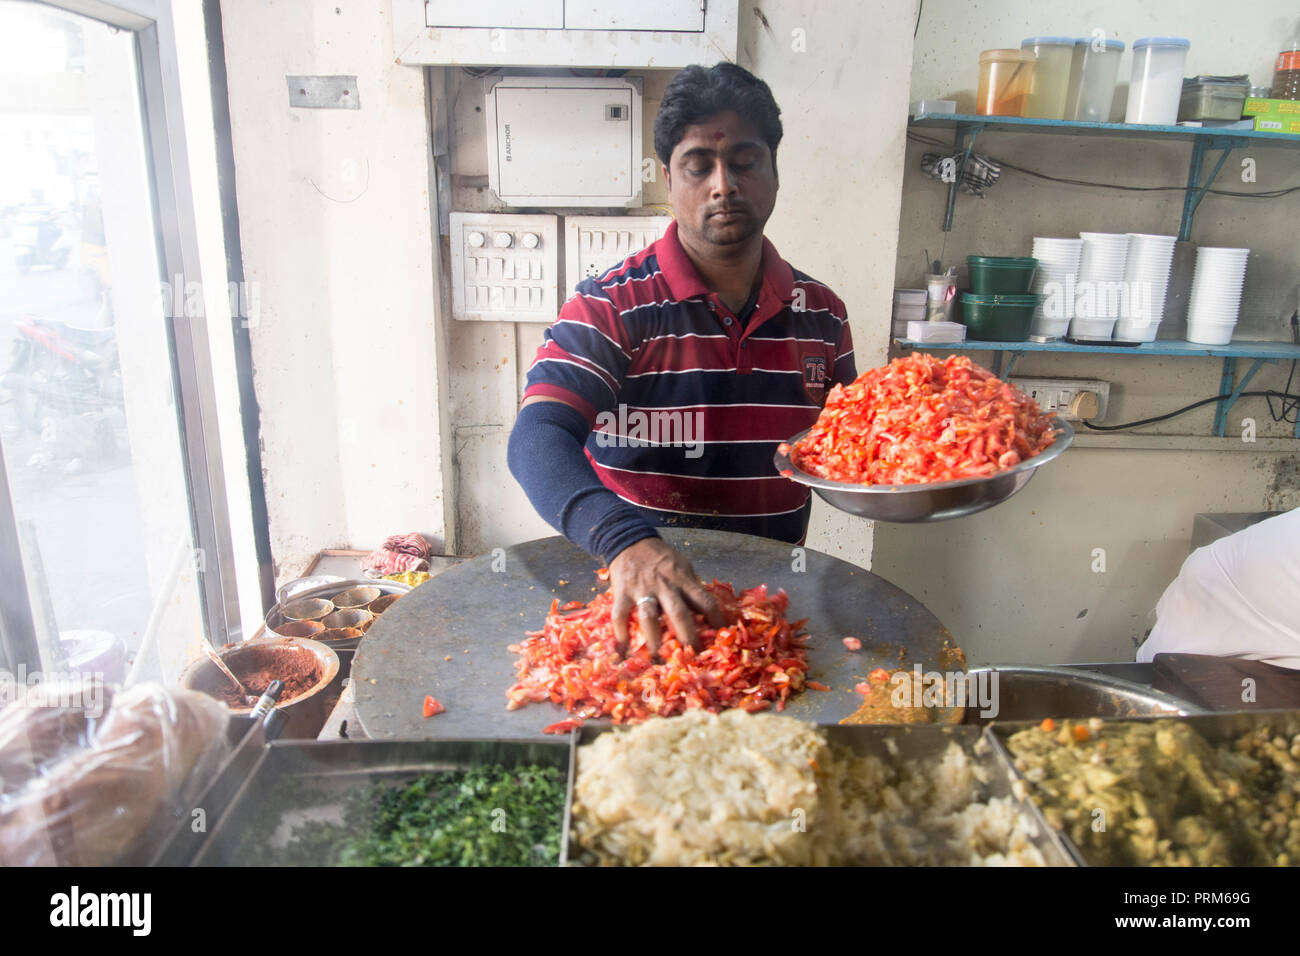 Preparing and selling Indian street food in a food stall. Photographed in Ahmedabad, Gujarat, India - Stock Image